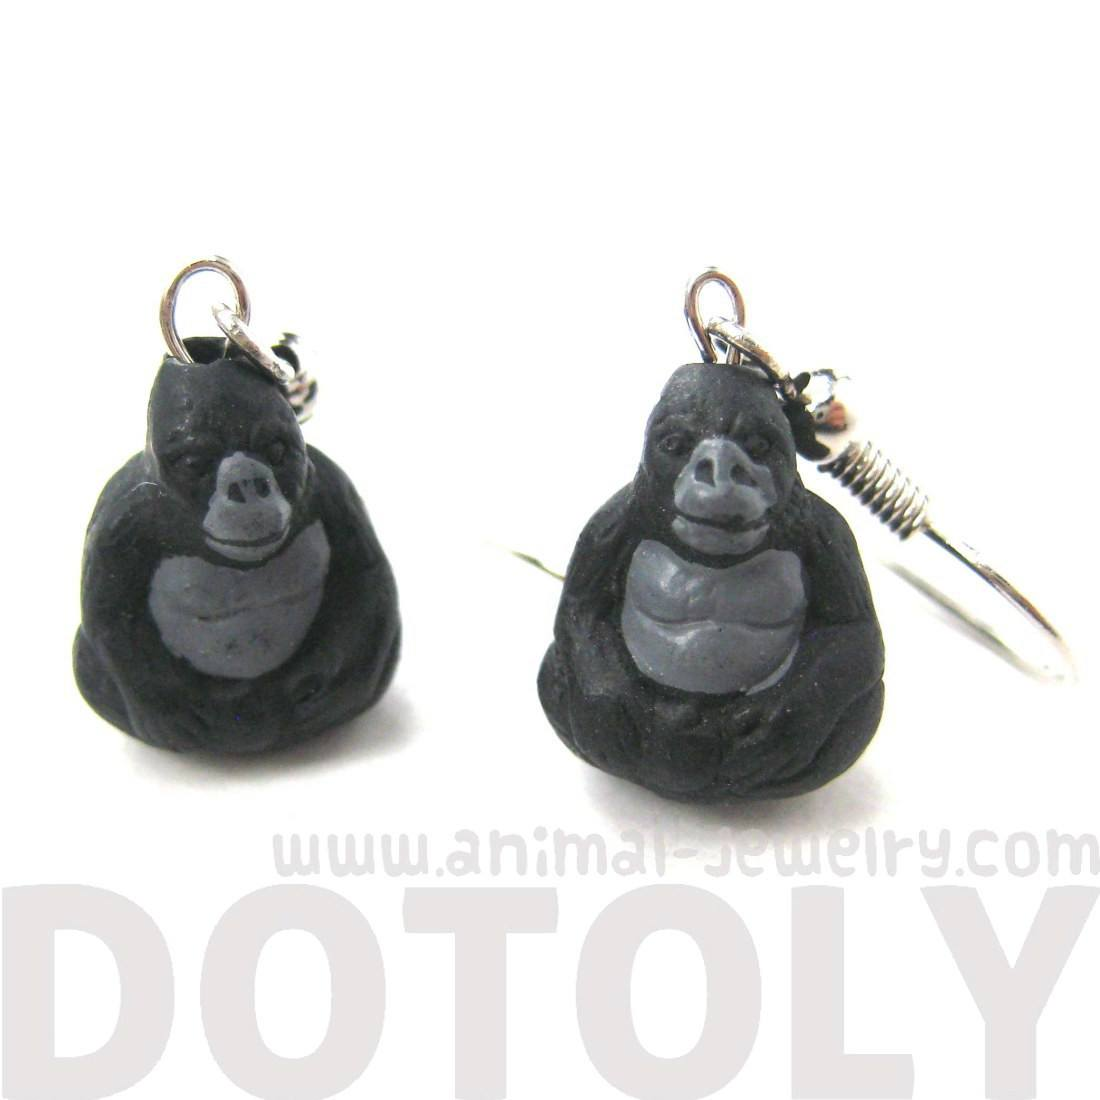 Realistic Gorilla Shaped Porcelain Ceramic Animal Dangle Earrings